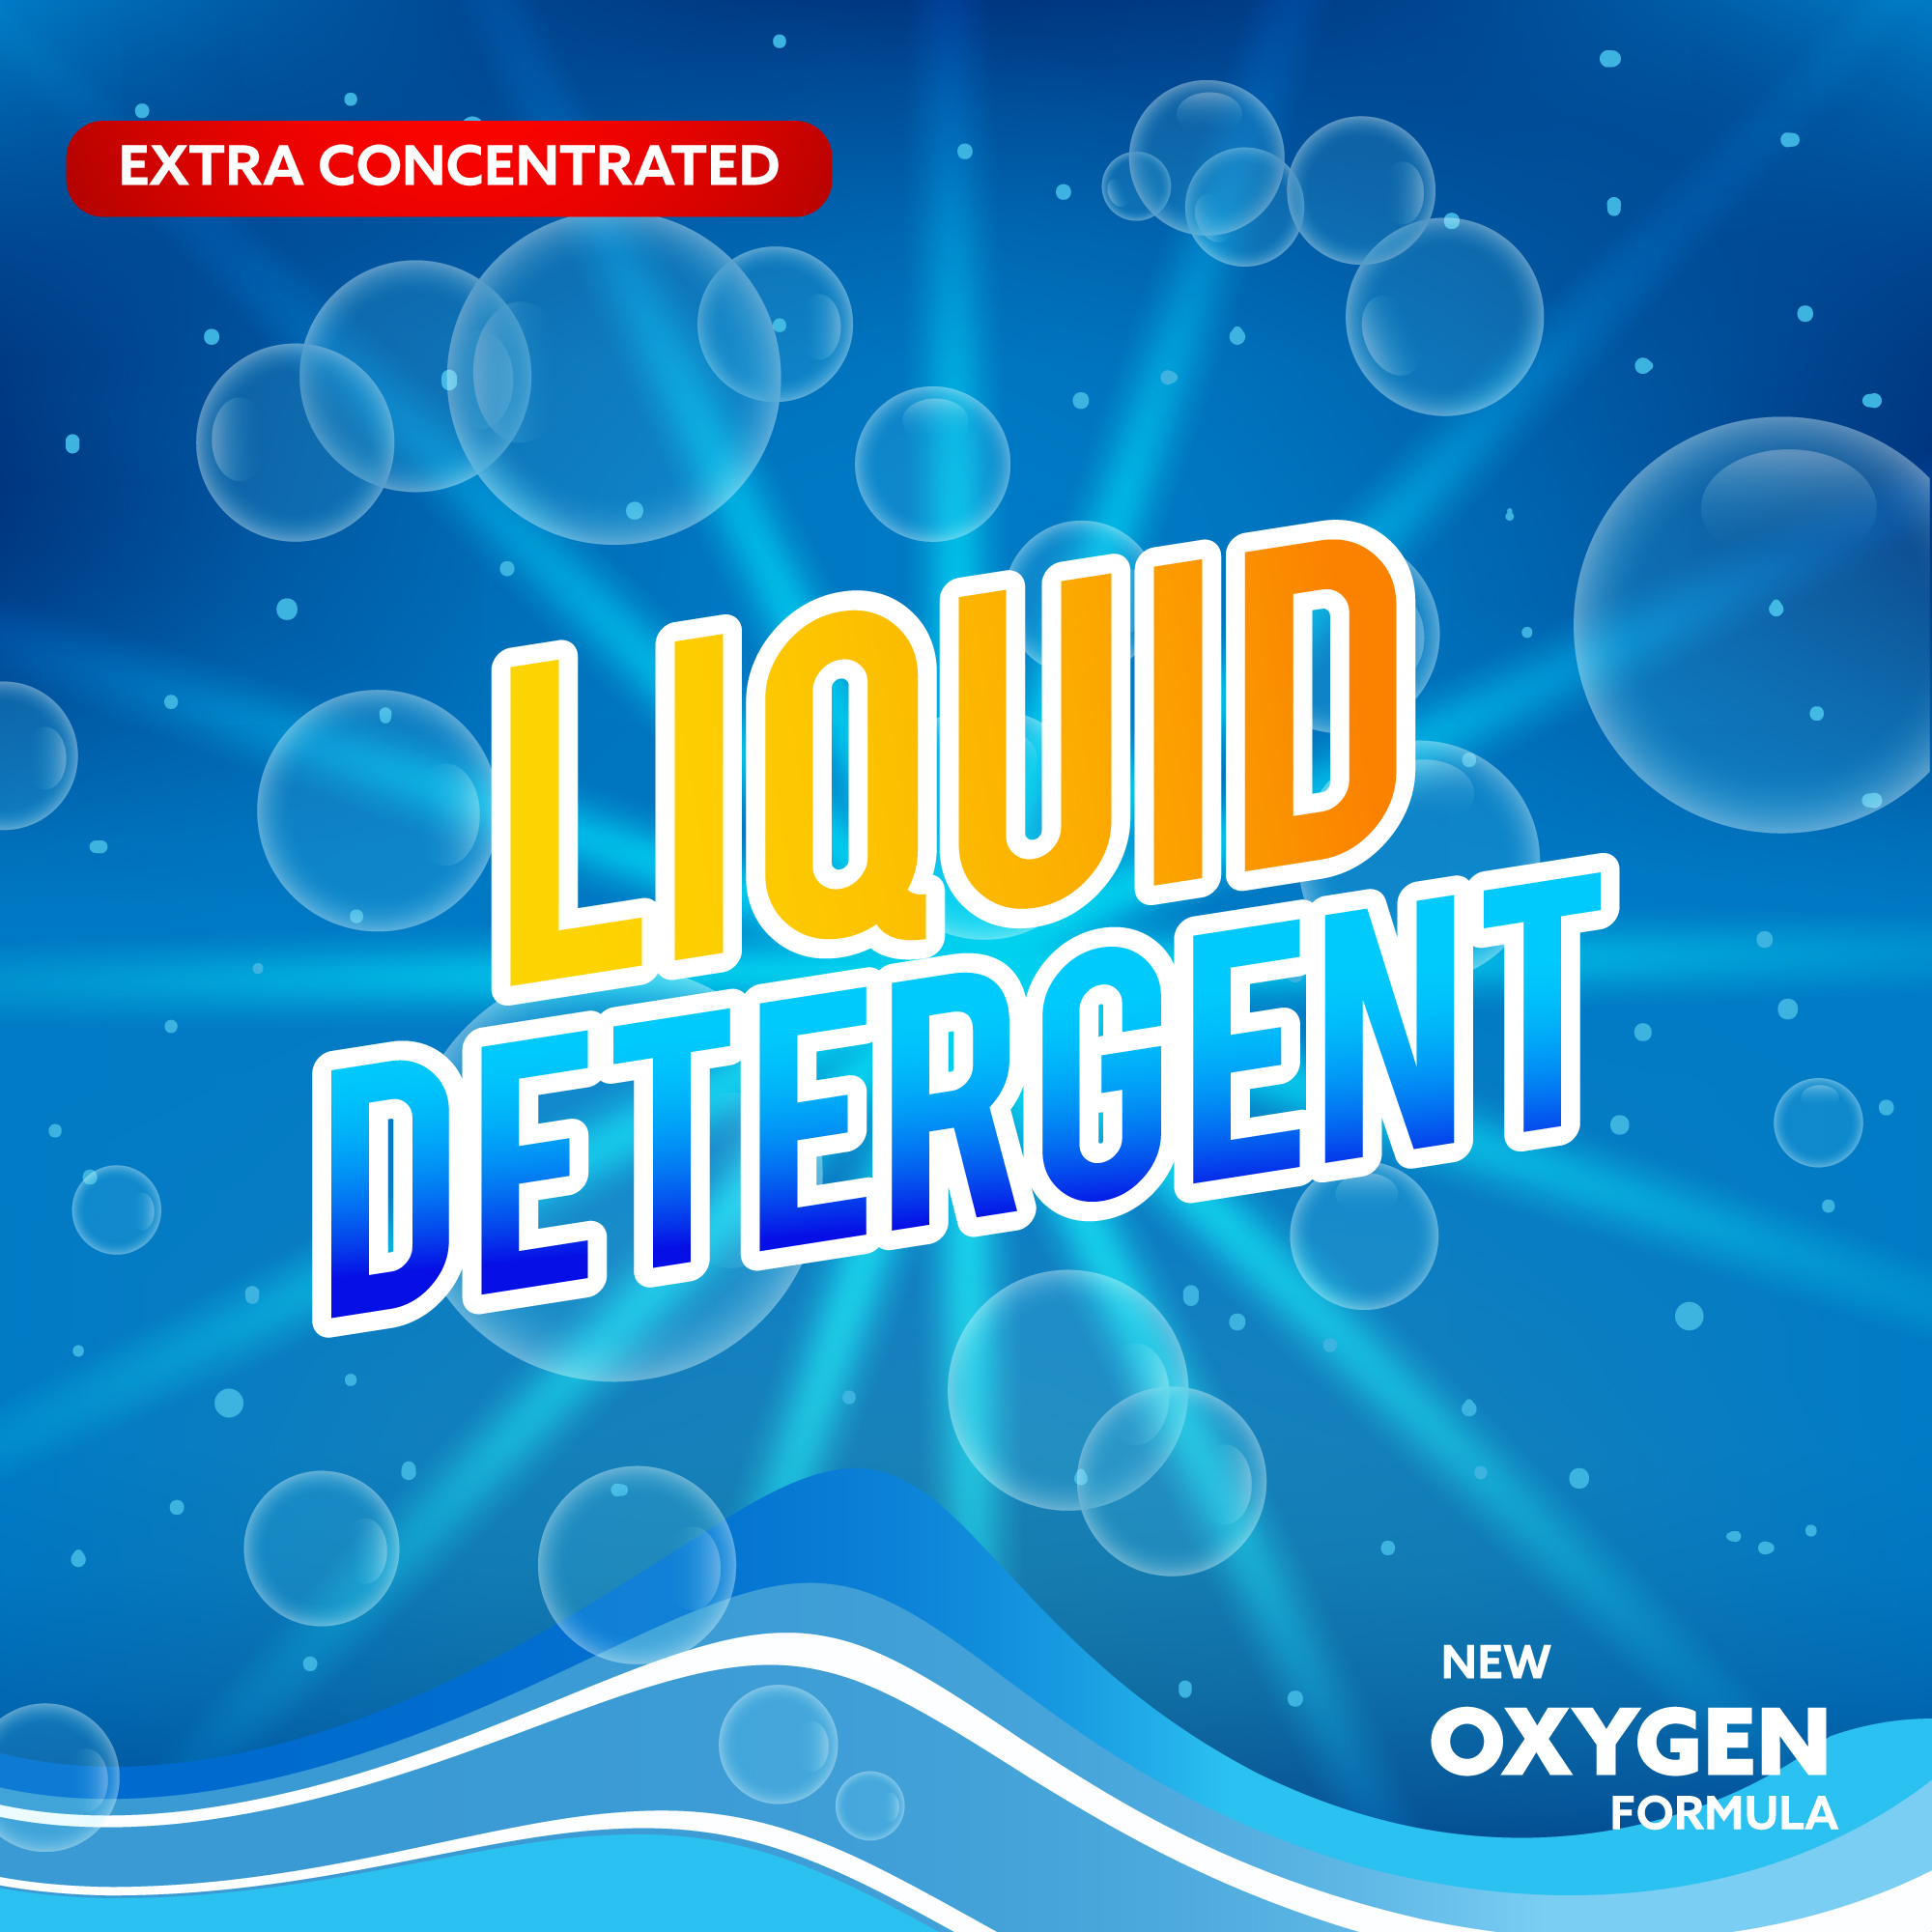 Detergent and Laundry Advertising Concept